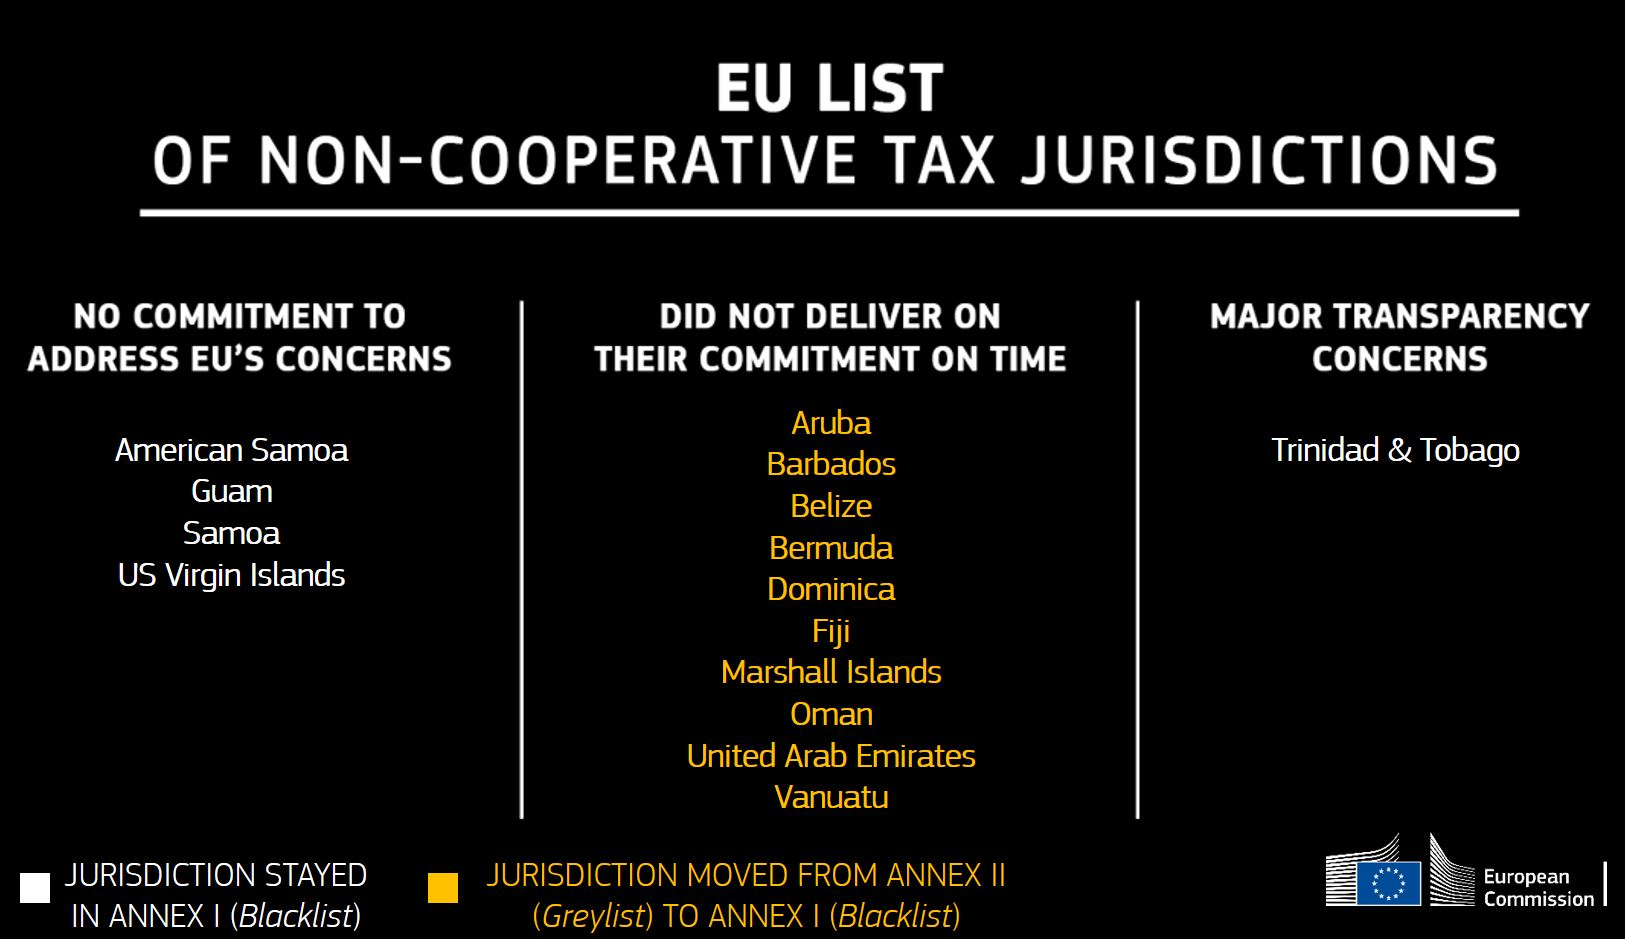 EU non cooperative tax jurisdictions international tax advisors inc international tax accountant CPA miami doral